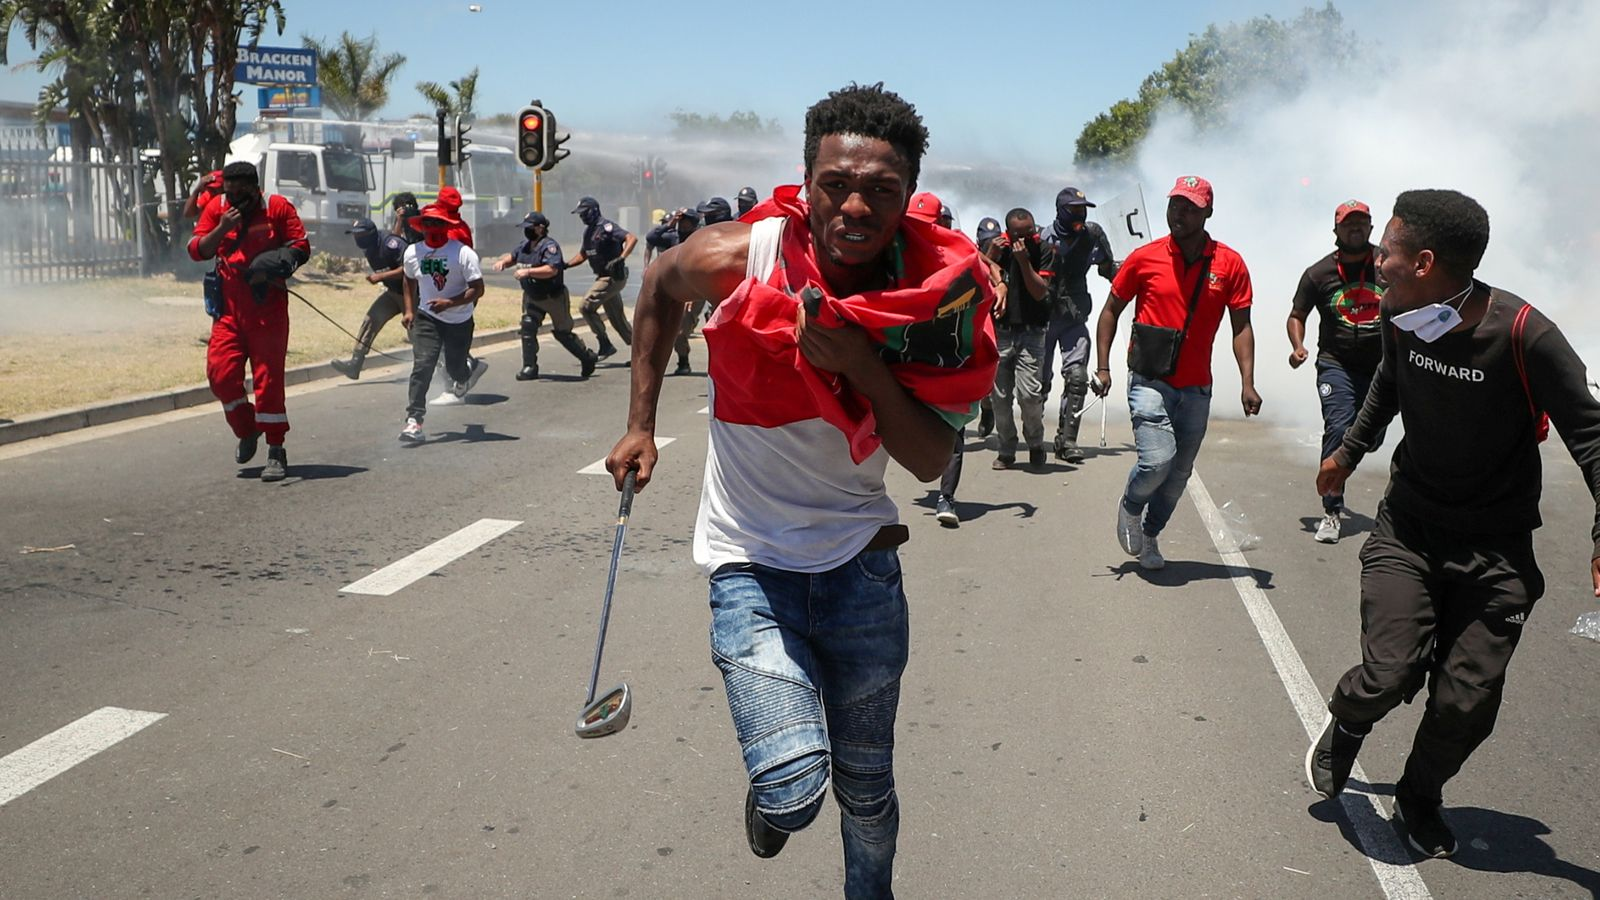 South African police use tear gas on 'whites-only' prom protesters